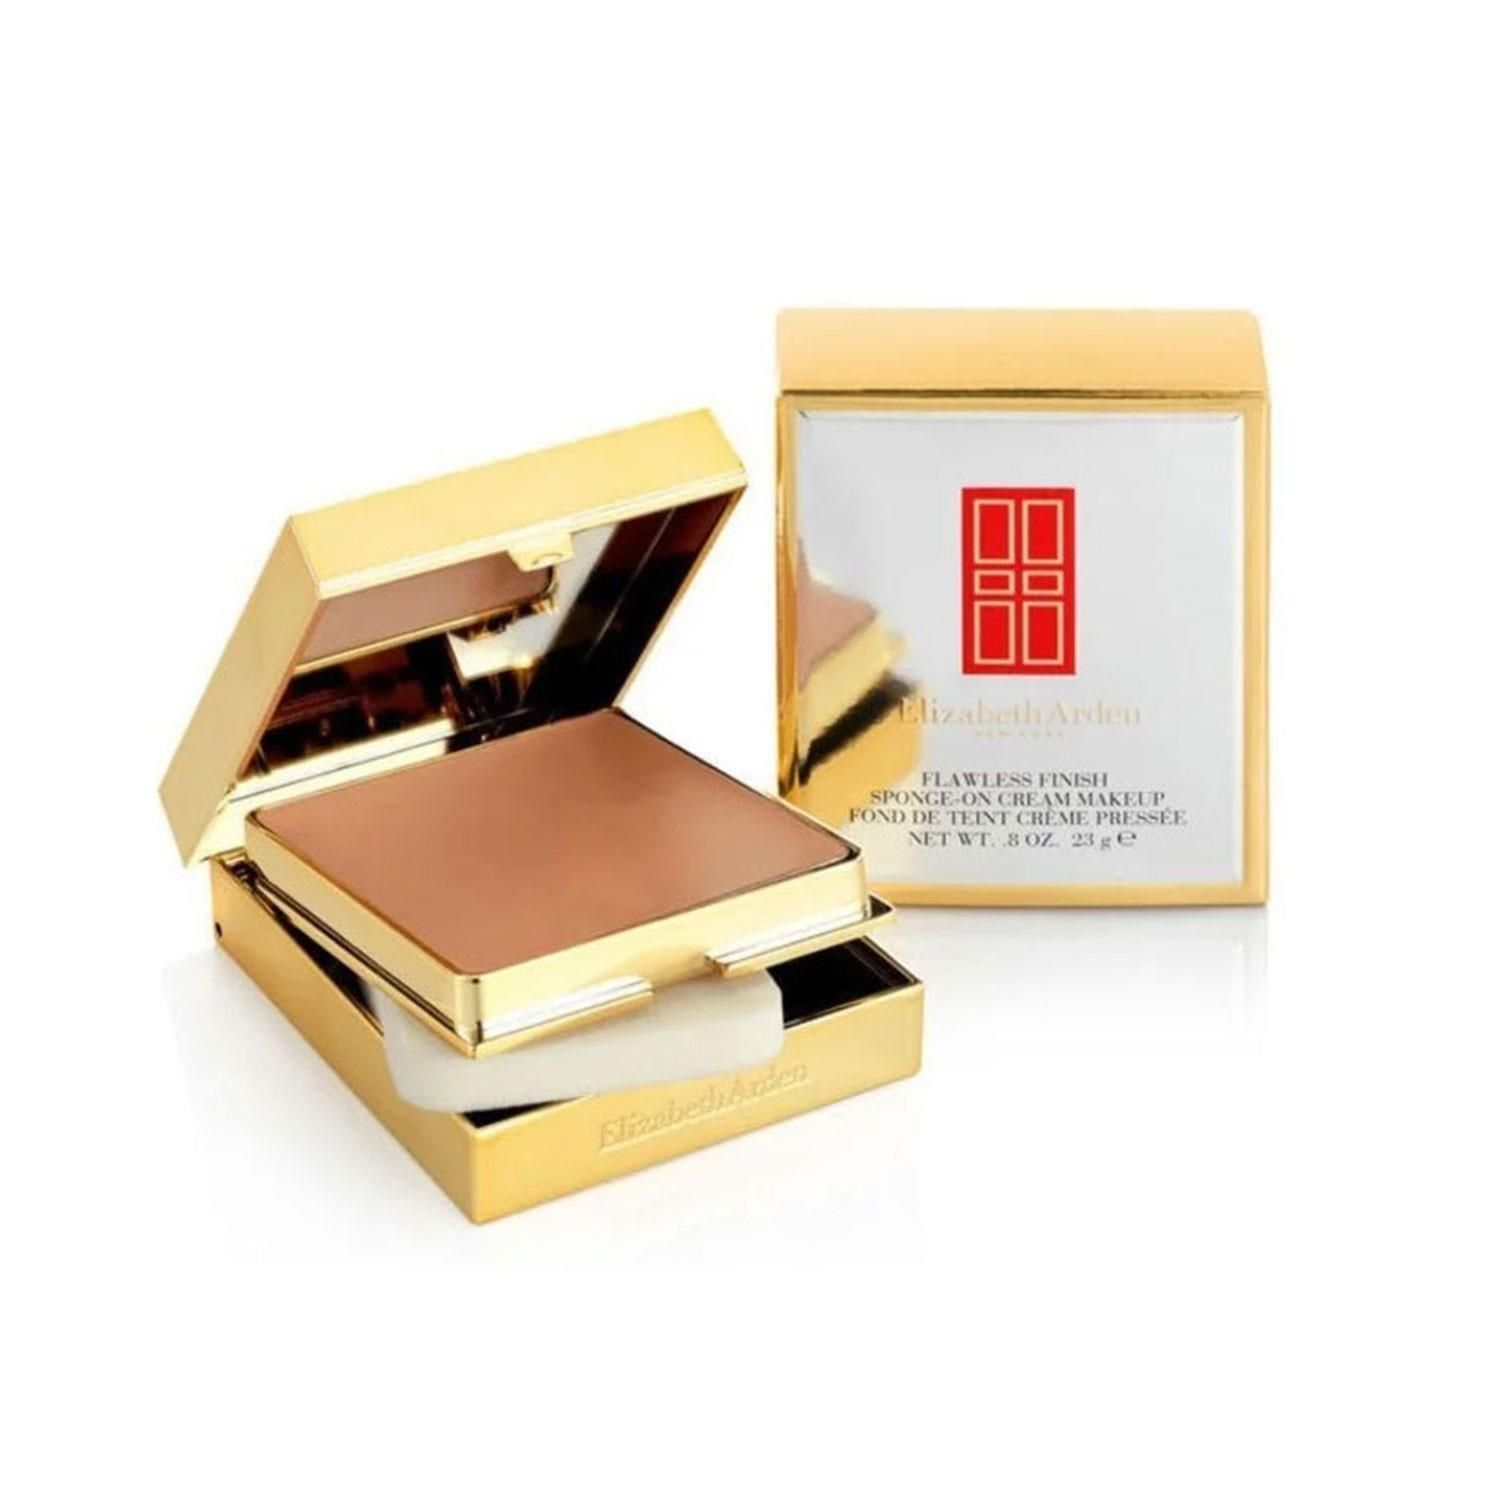 Elizabeth Arden Flawless Finish Sponge On Cream Makeup Compact Chestnut 23g